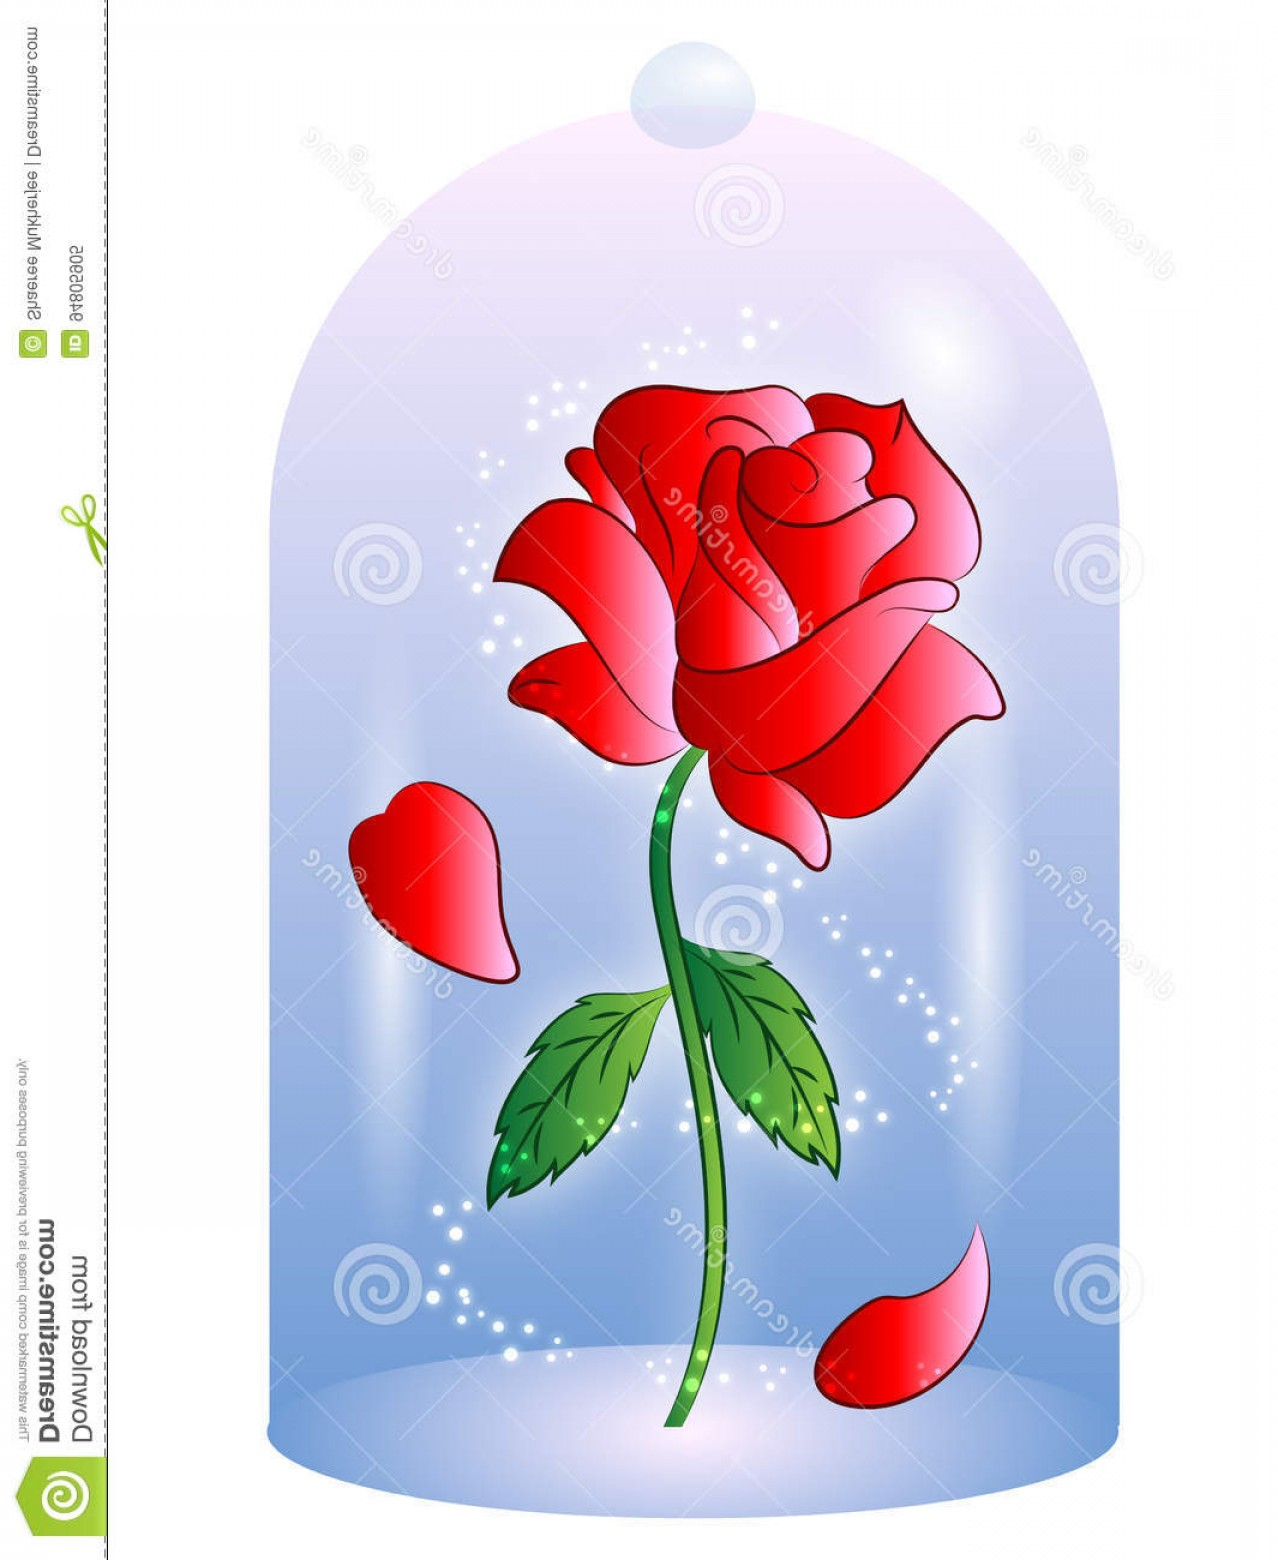 Beauty And The Beast Rose Outline Vector.